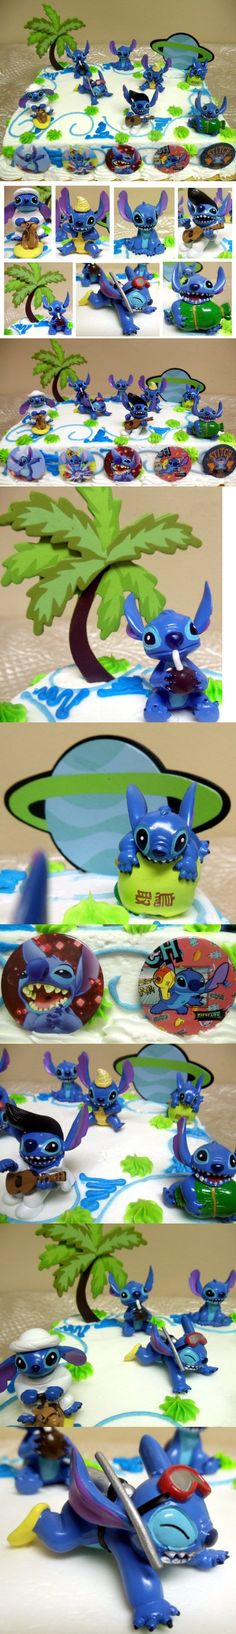 Unique Lilo and Stitch 16 Piece Birthday Cake Topper Set Featuring 8 Stitch Figures, Palm Tree Decorative Piece, Stitch's Rocket Decorative Cake Piece and 6 1 Stitch Decorative Cake Buttons - Cake Supplies - Toys - $24.99